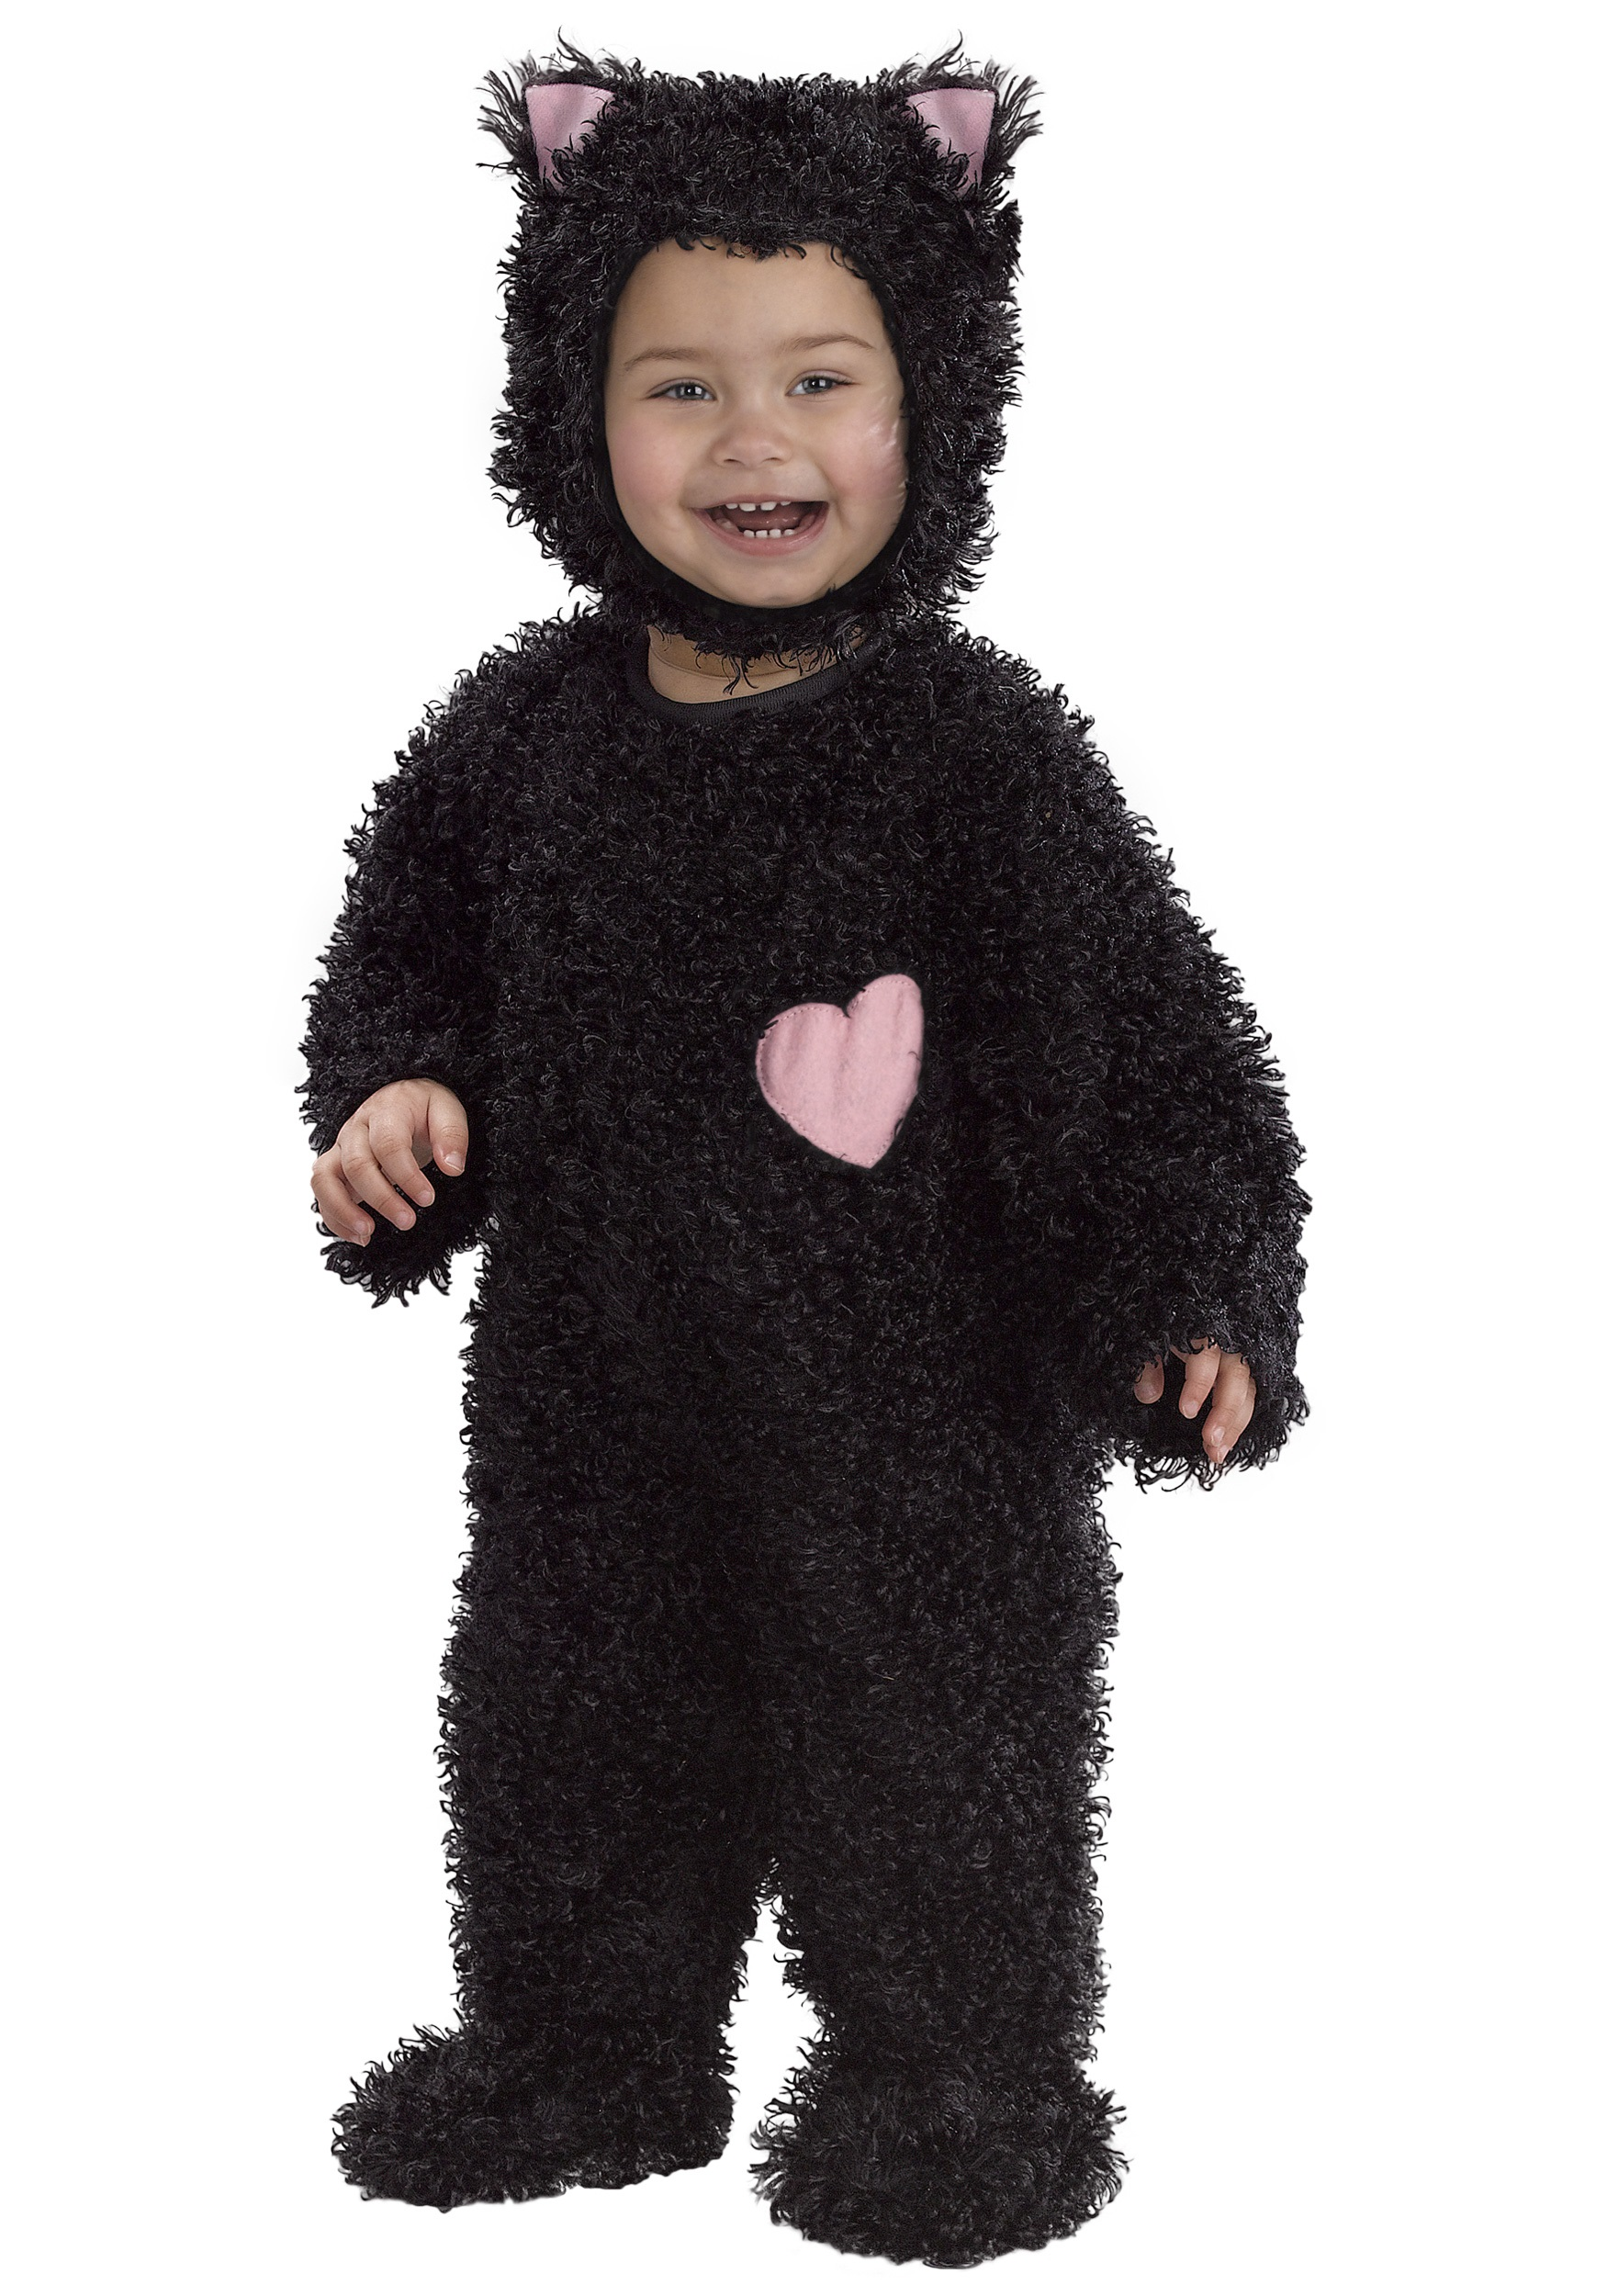 Toddler Scruffy Black Kitty Costume Halloween Costume Ideas 2018